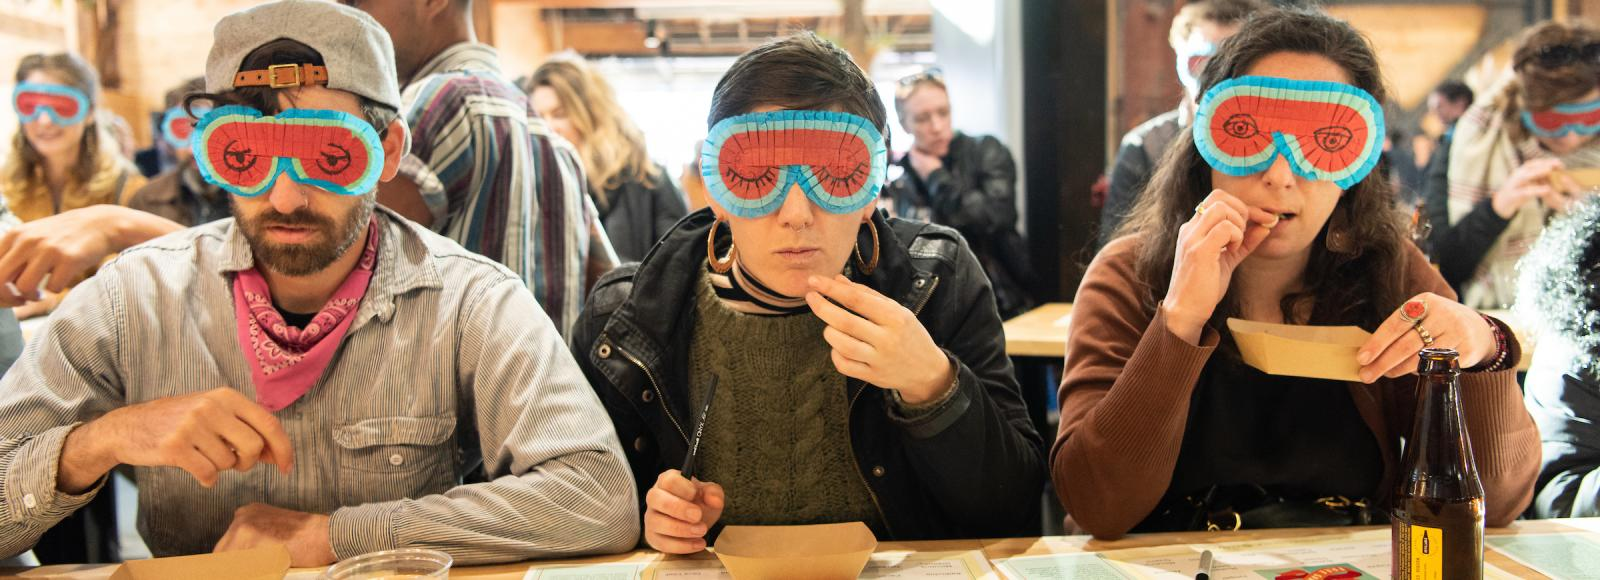 People wearing blindfolds sample food